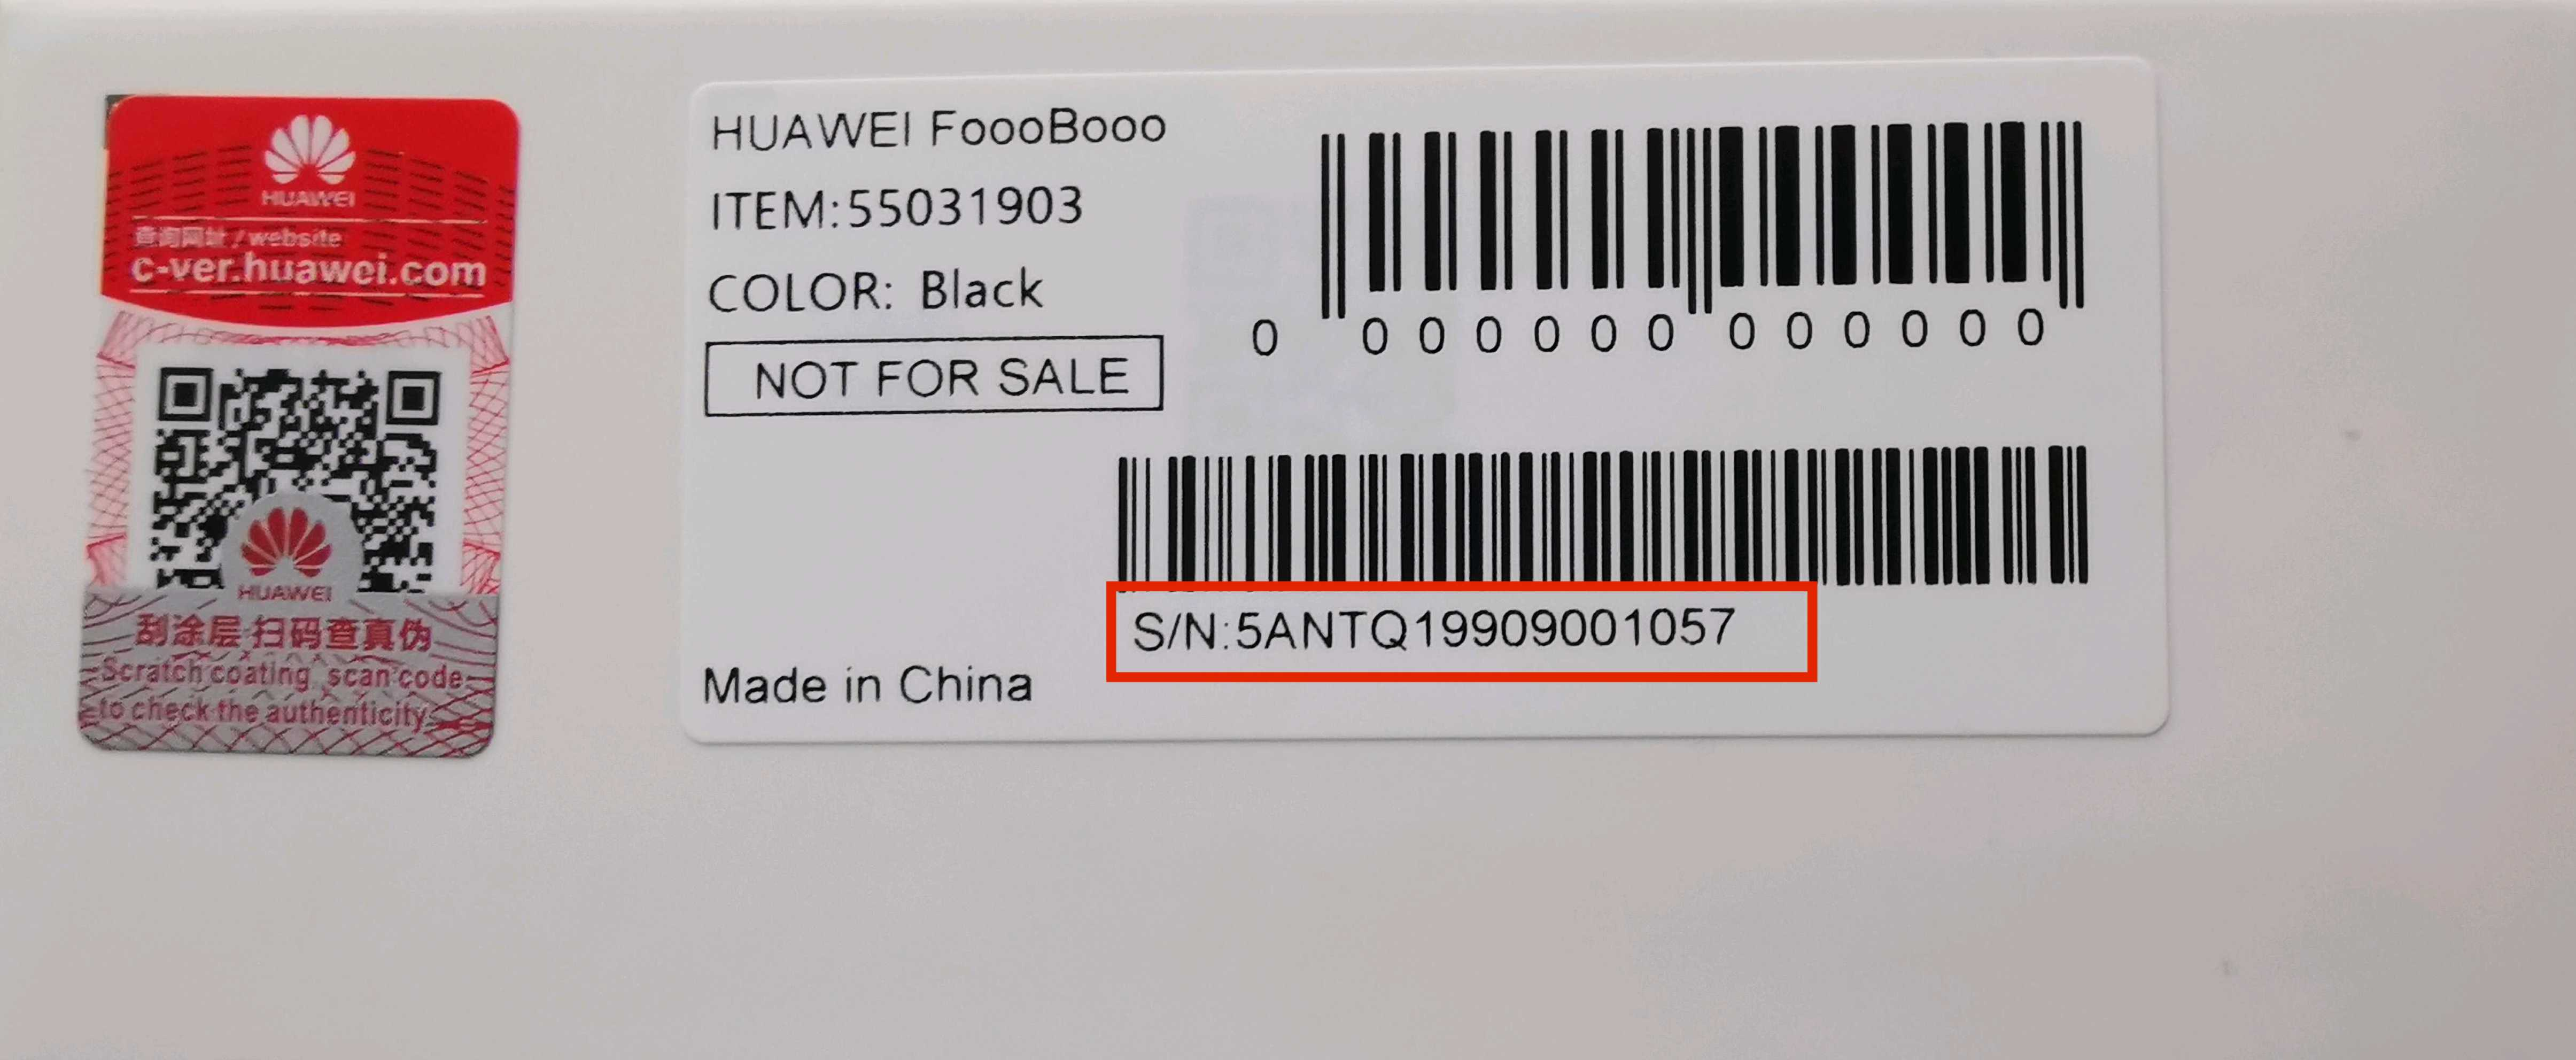 A serial number is displayed below the product barcode on the product packaging highlighted with a red square